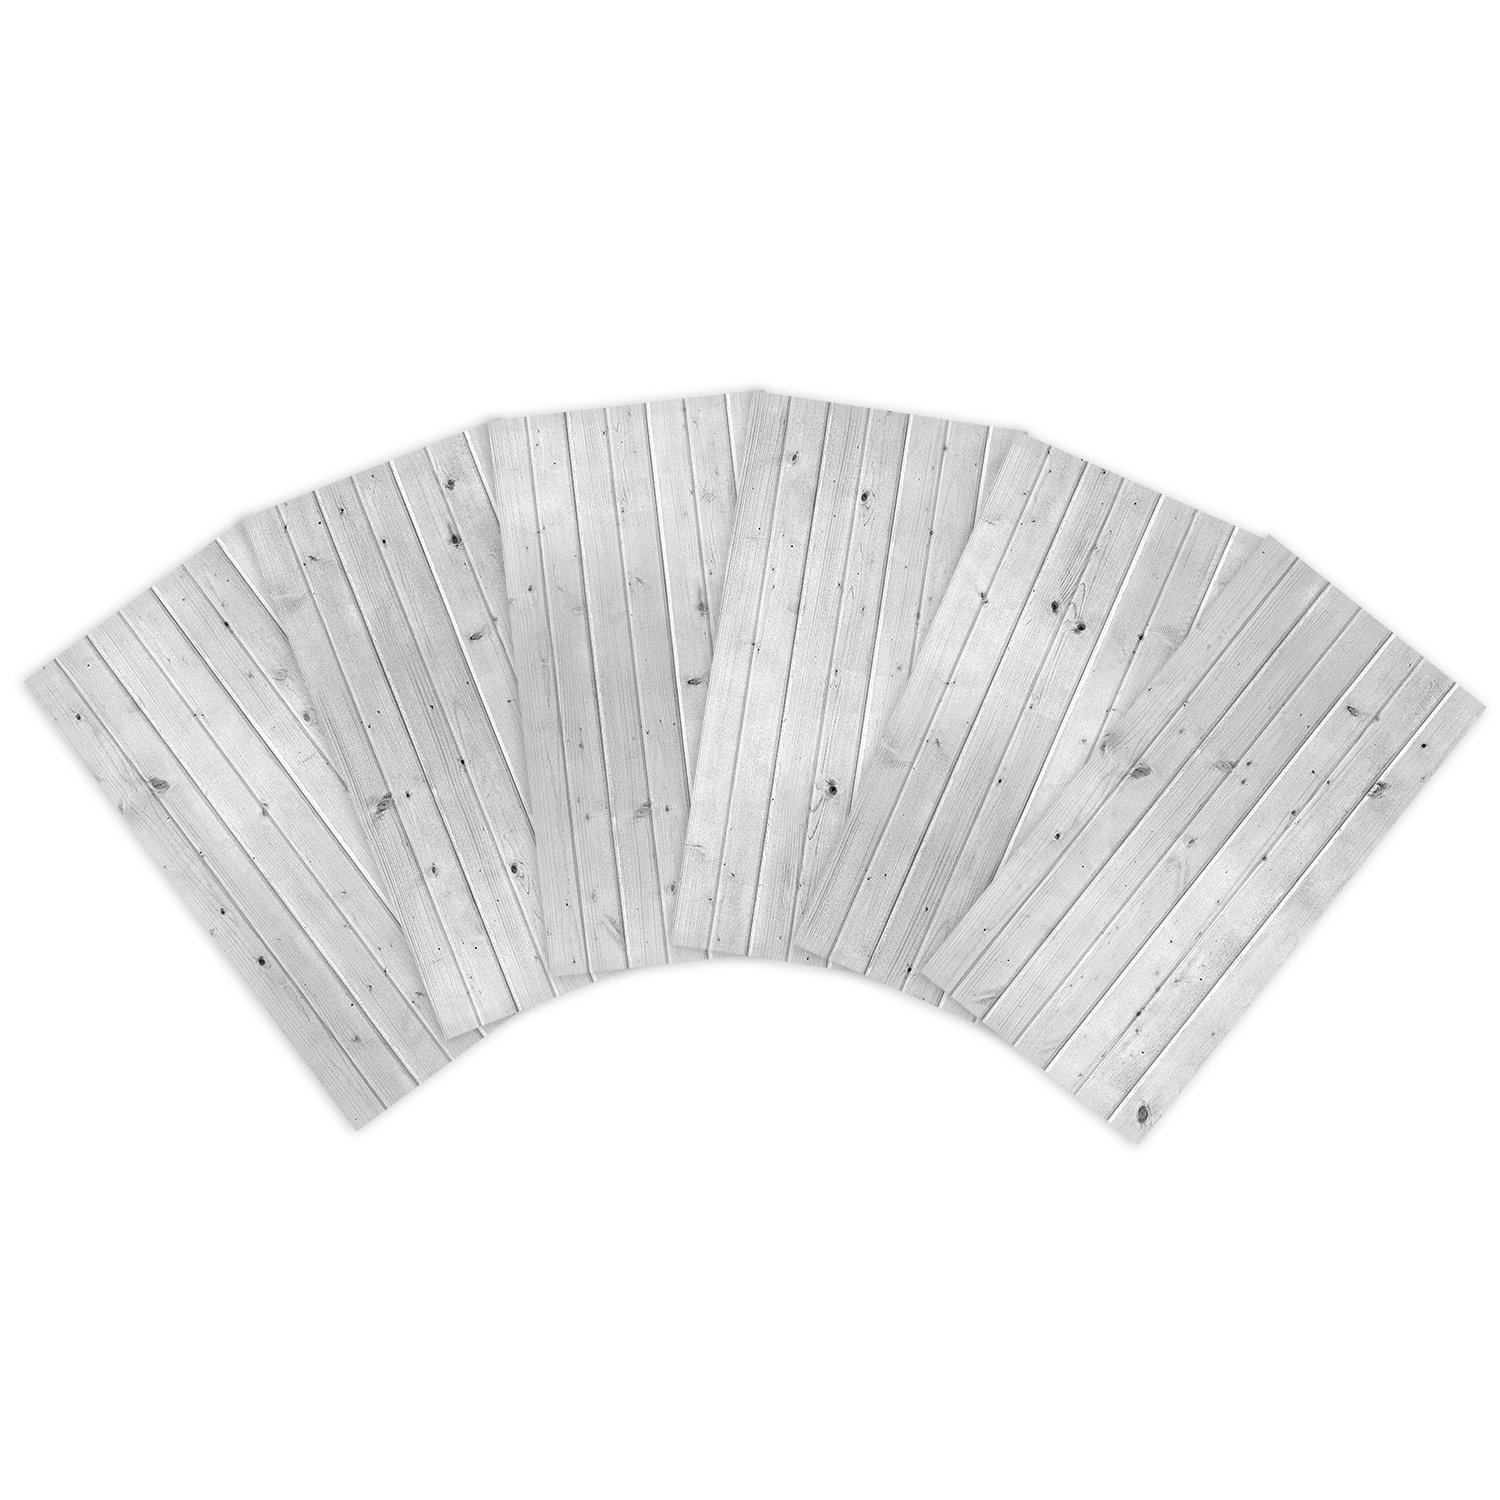 Lot of 6 2x4 Glue Up Ceiling Tile Skin - White Washed Knotty Pine